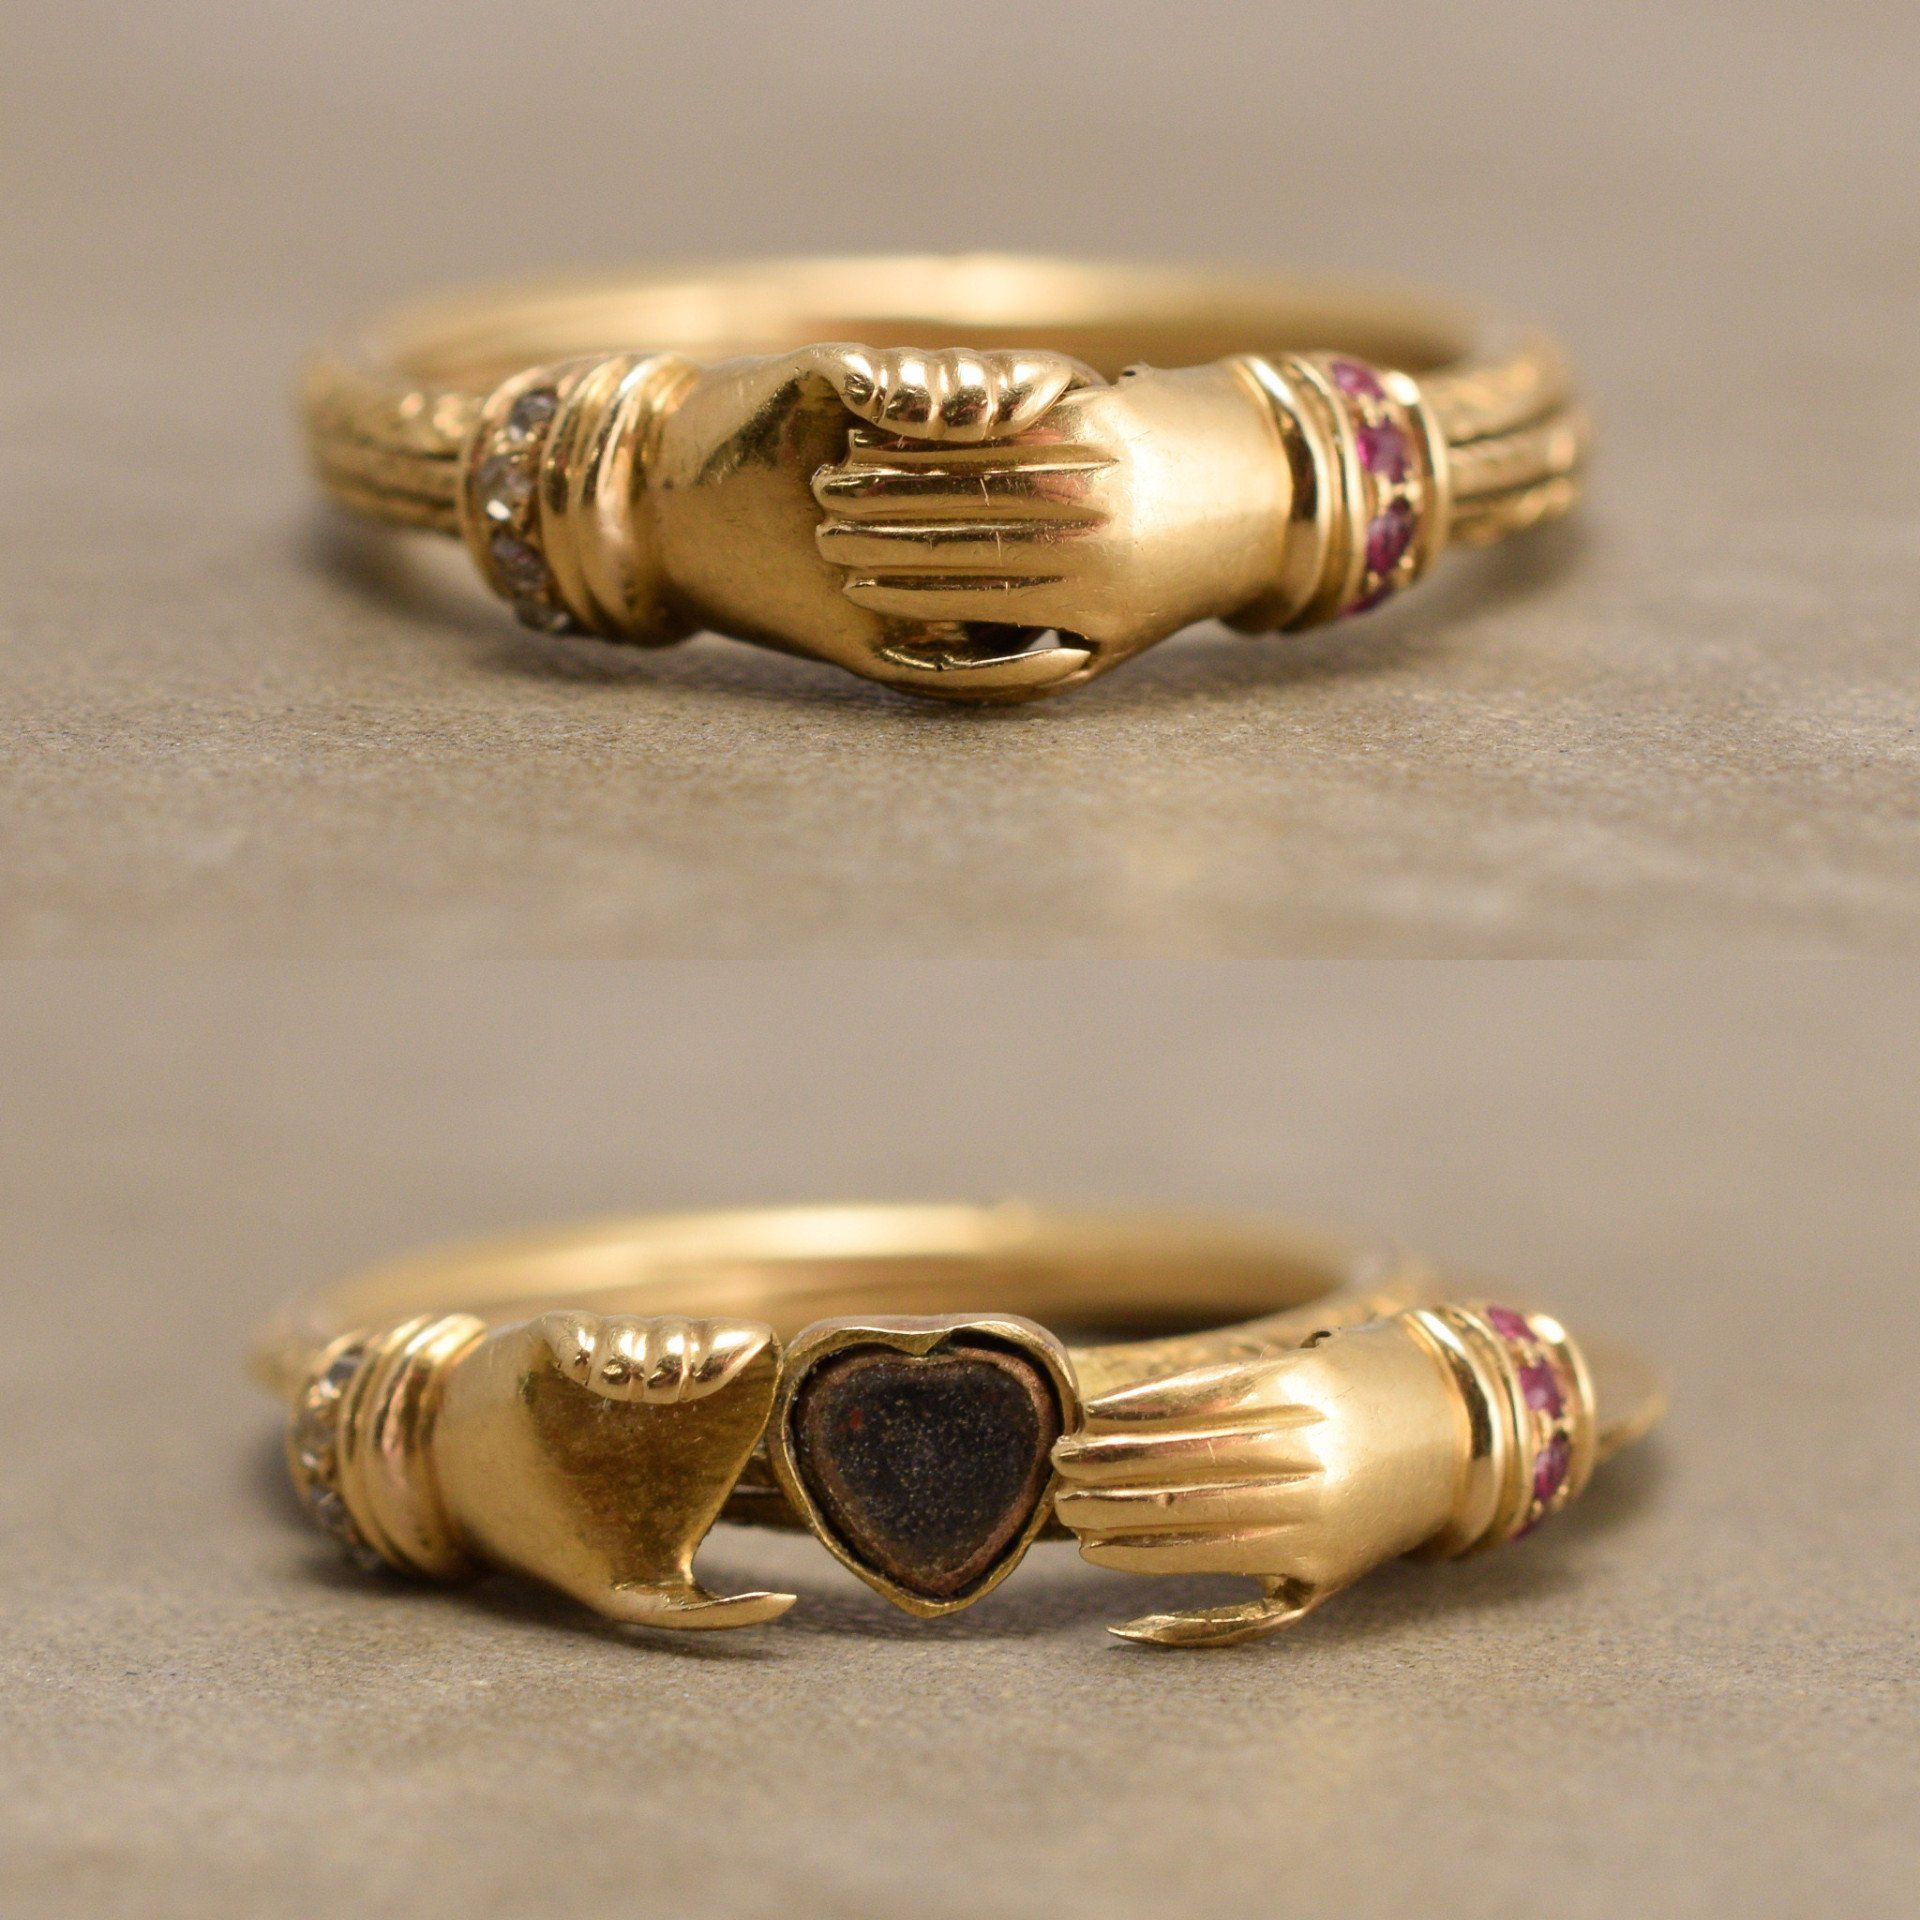 Victorian Fede Ring with Rubies and Diamonds